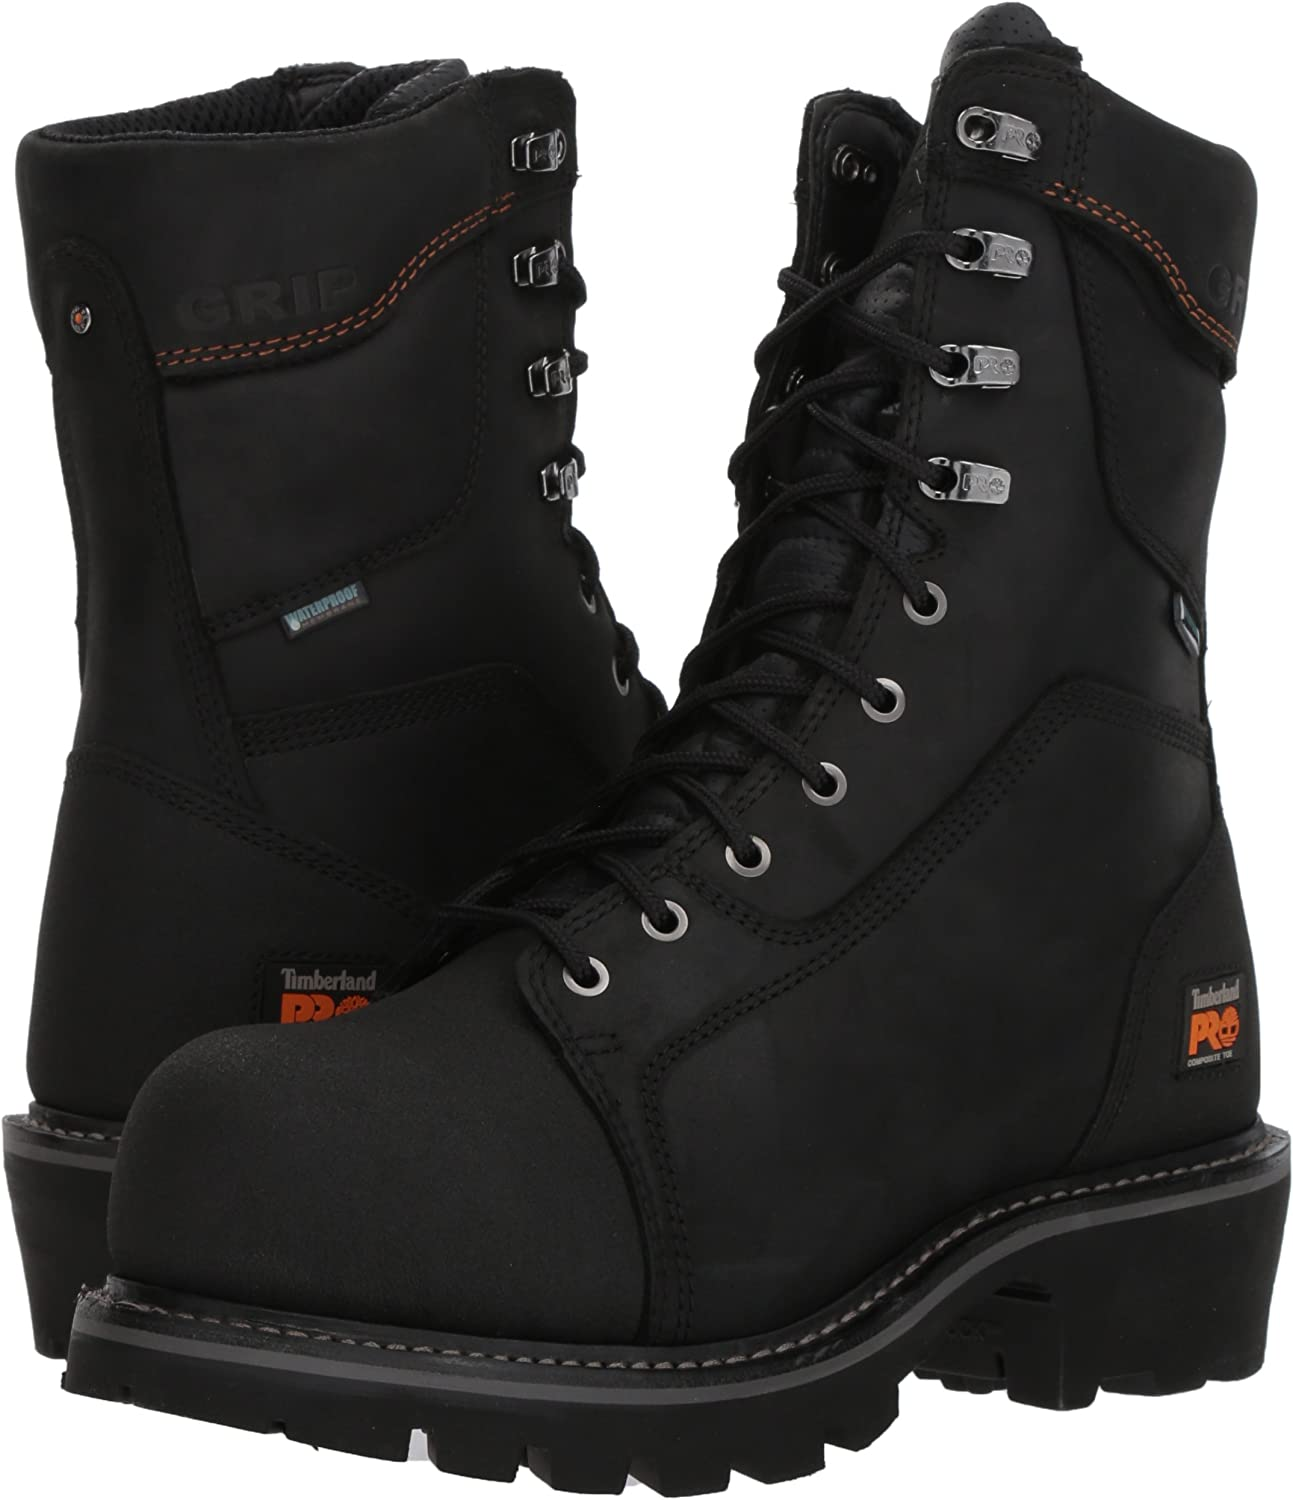 Timberland PRO Men's Rip Saw Composite Toe Logger Work Boot